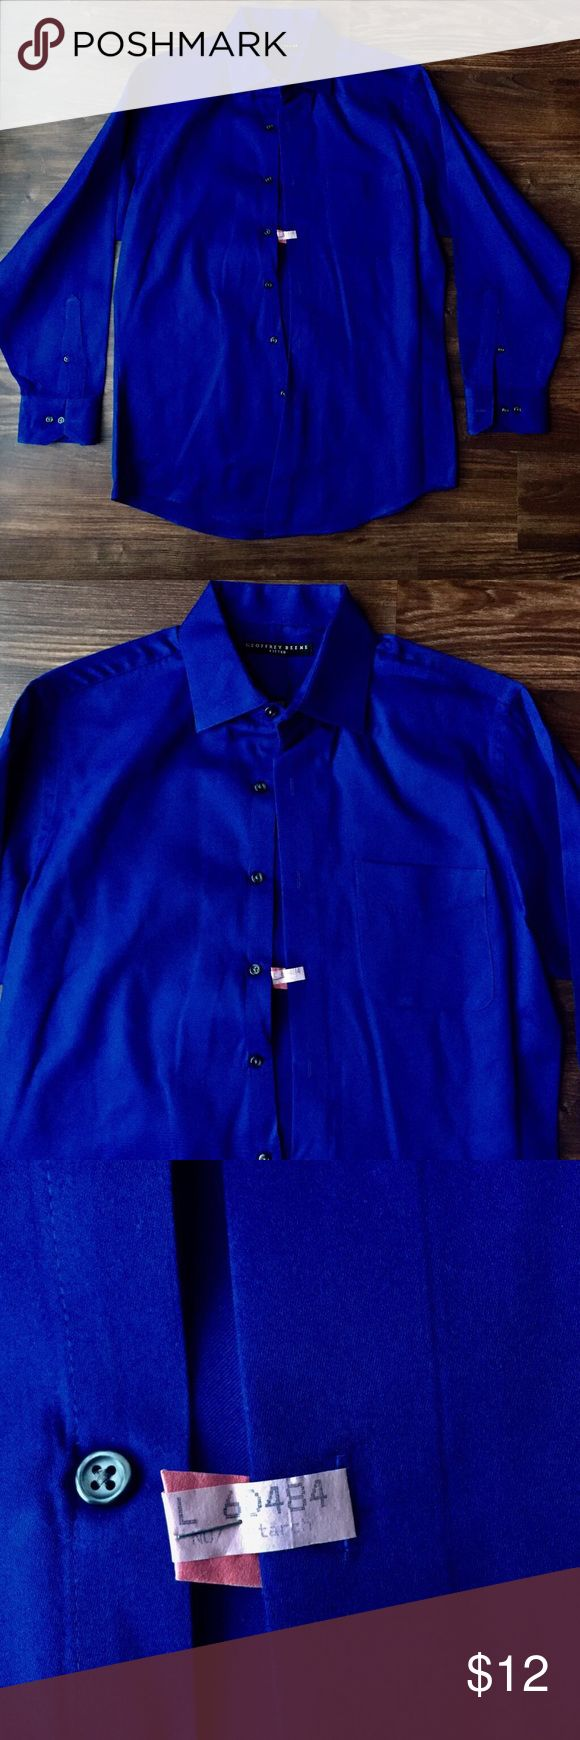 Geoffrey Beene 15 1/2 32/33 Blue Dry Cleaned PRISTINE CONDITIONS-This Button Down has been taken to the dry cleaners and is completely starched. It is in excellent preloved Conditions. Size 15 1/2, 32/33, Brand Geoffrey Beene. The material has been Starched so please be aware that it will seem as though it has permanently ironed. It feel like thinner, softer sort of cardboard—if you're looking for that professional look. This can be removed with being placed in the wash, and it will return…